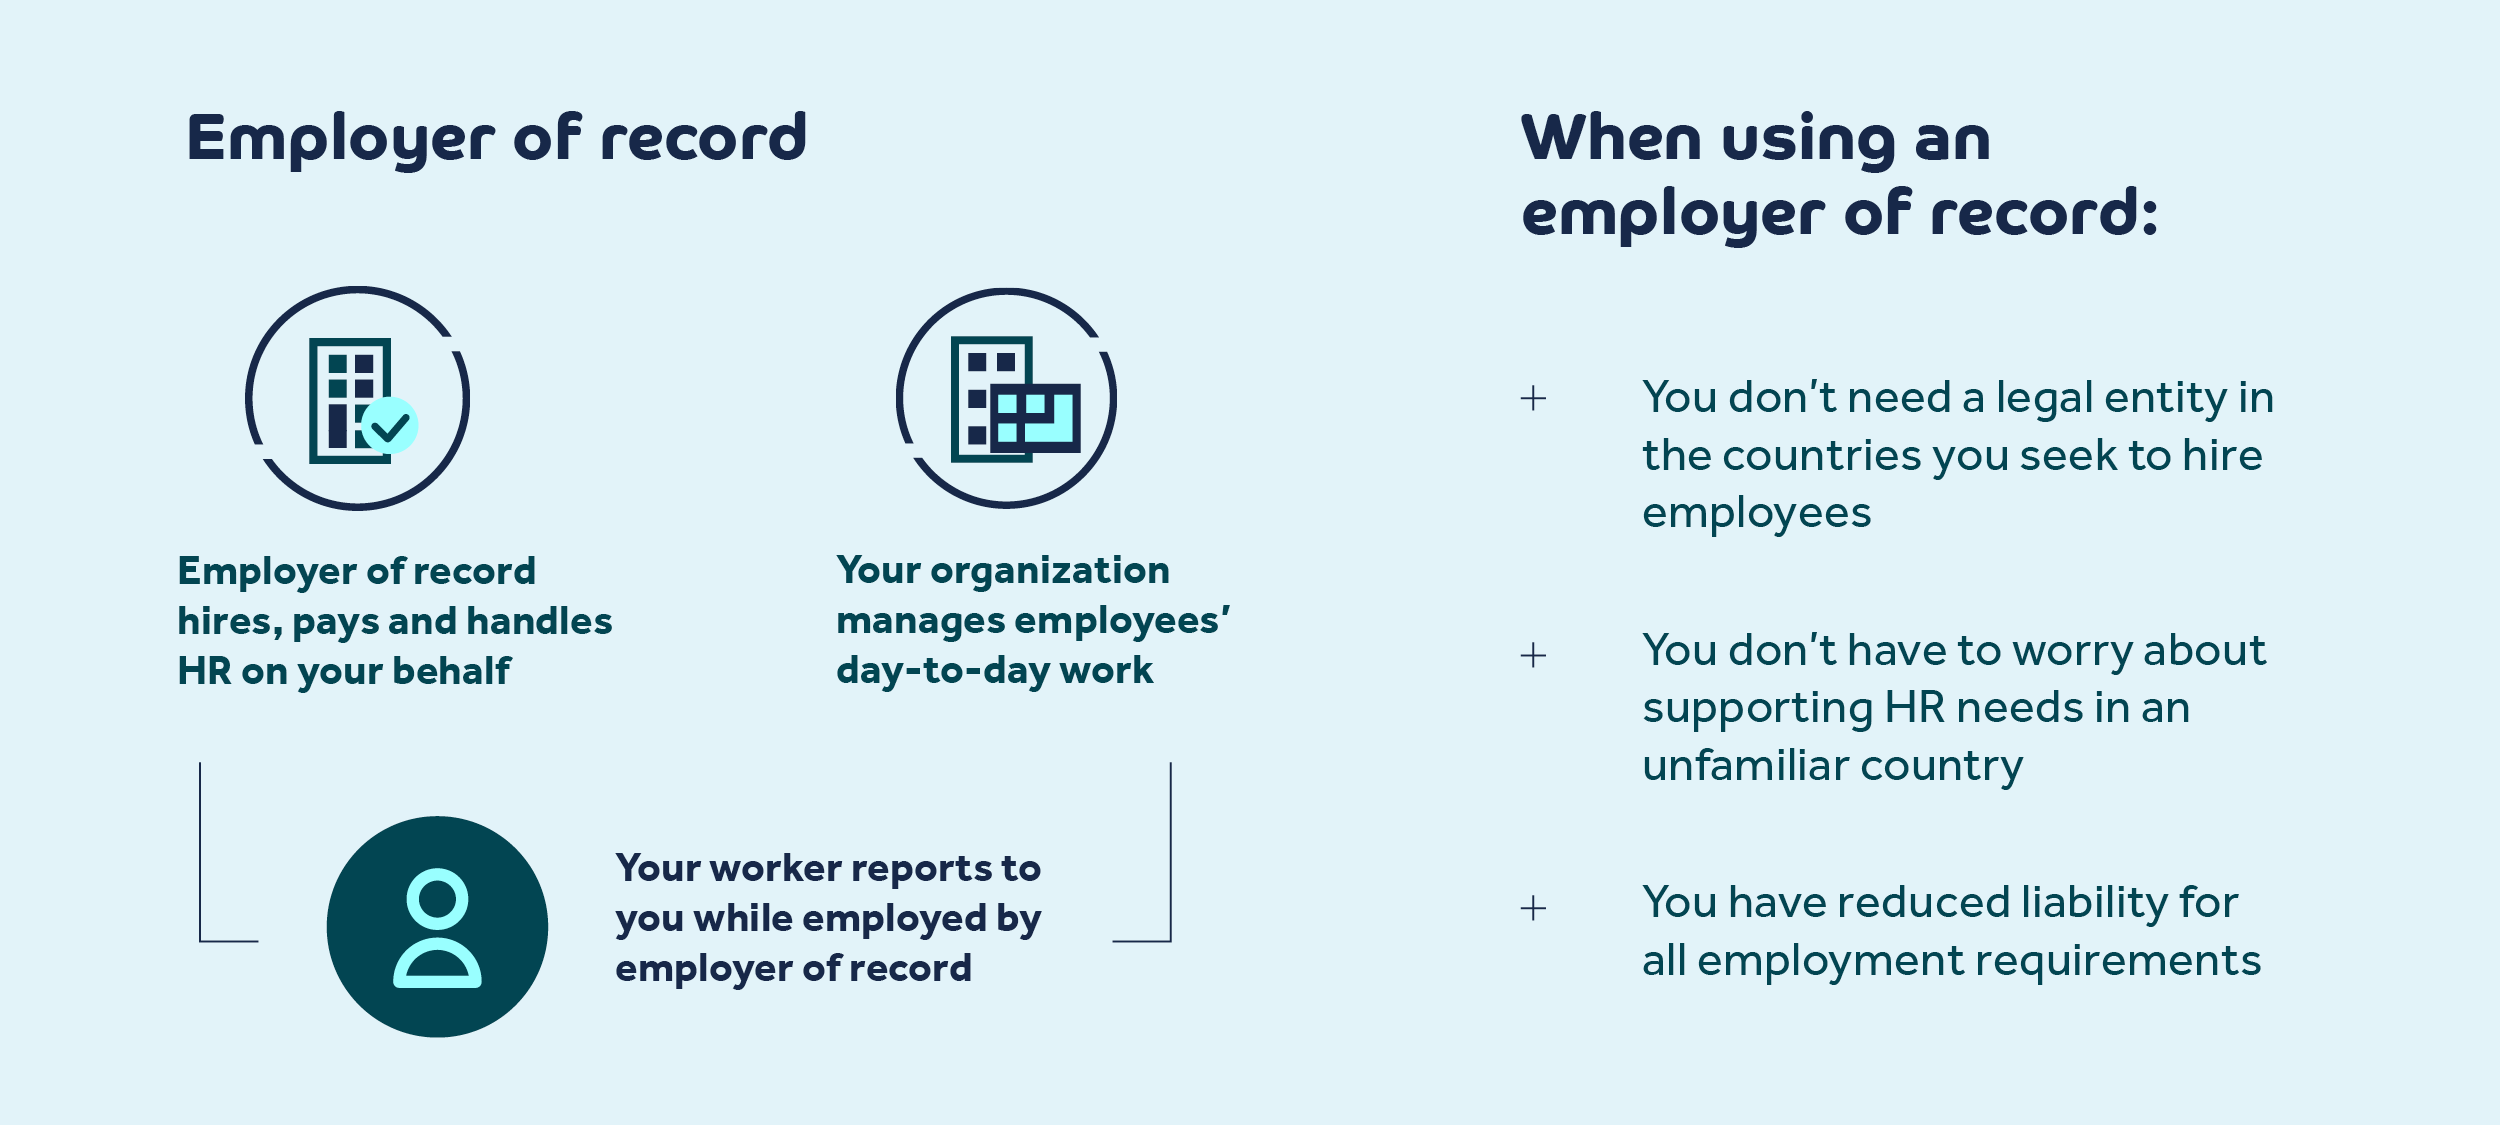 co-employment and employer of record